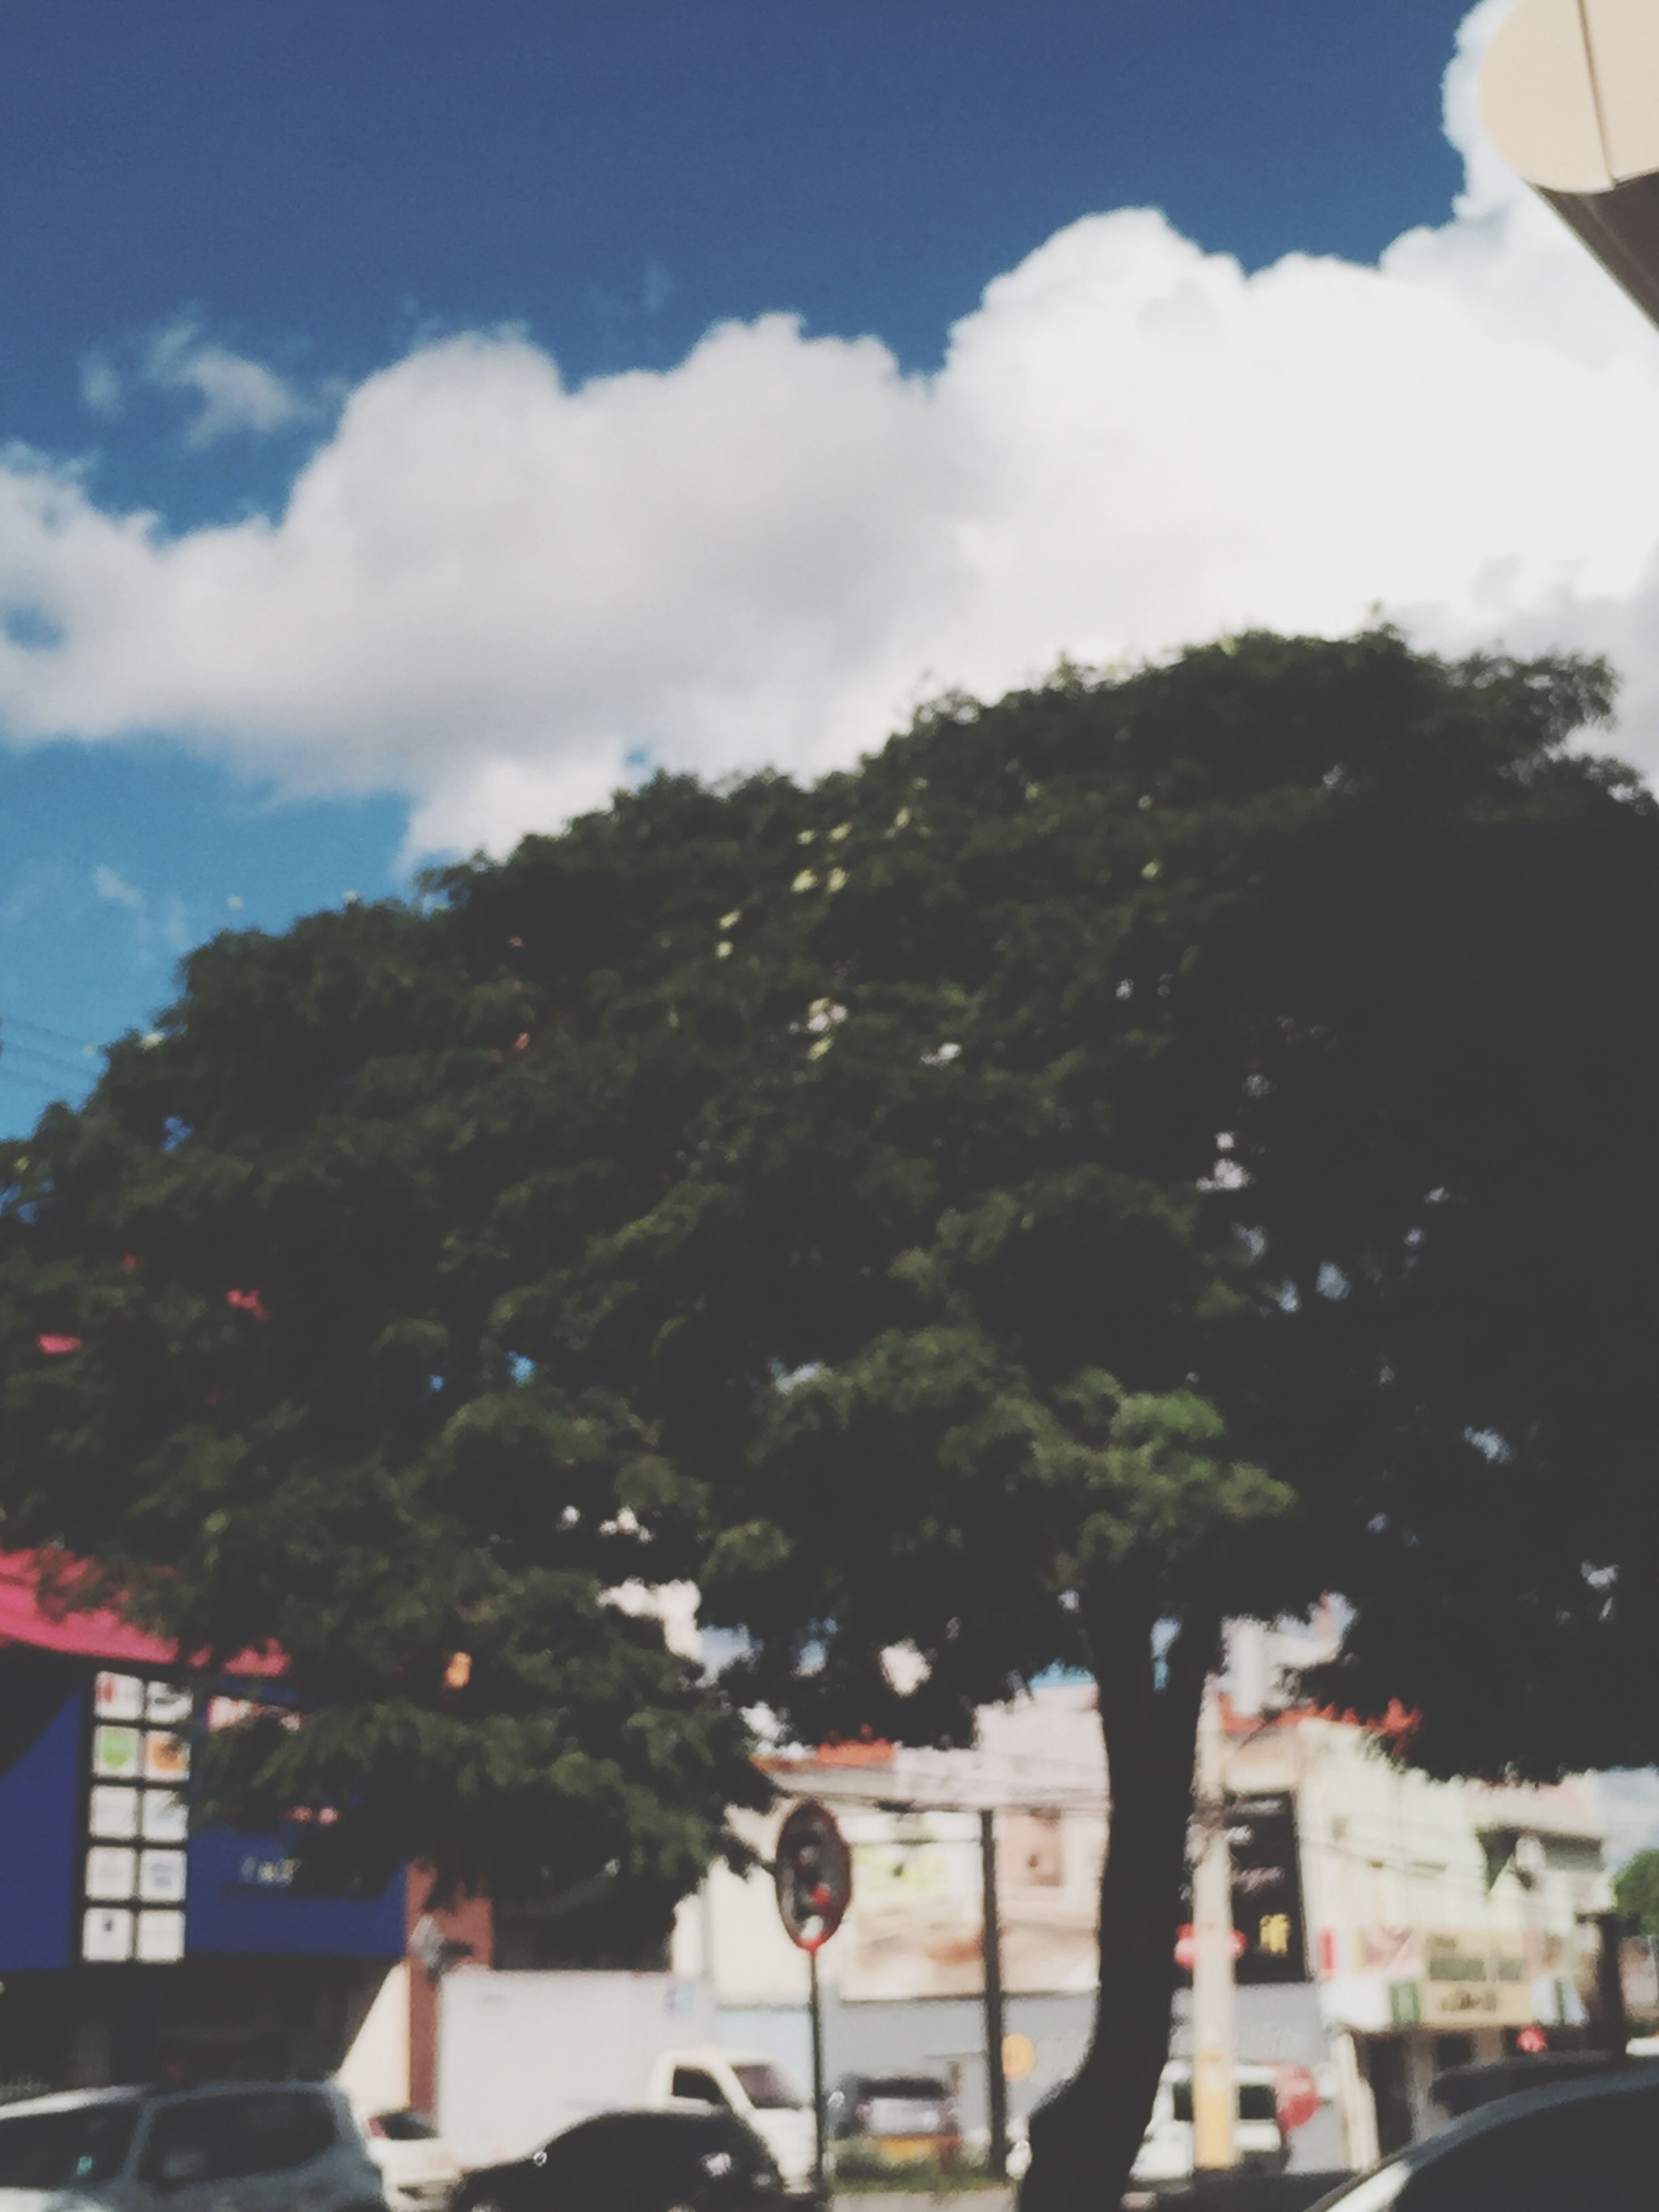 tree, sky, building exterior, built structure, architecture, cloud - sky, low angle view, cloud, outdoors, day, men, street, city, lifestyles, growth, street light, house, sunlight